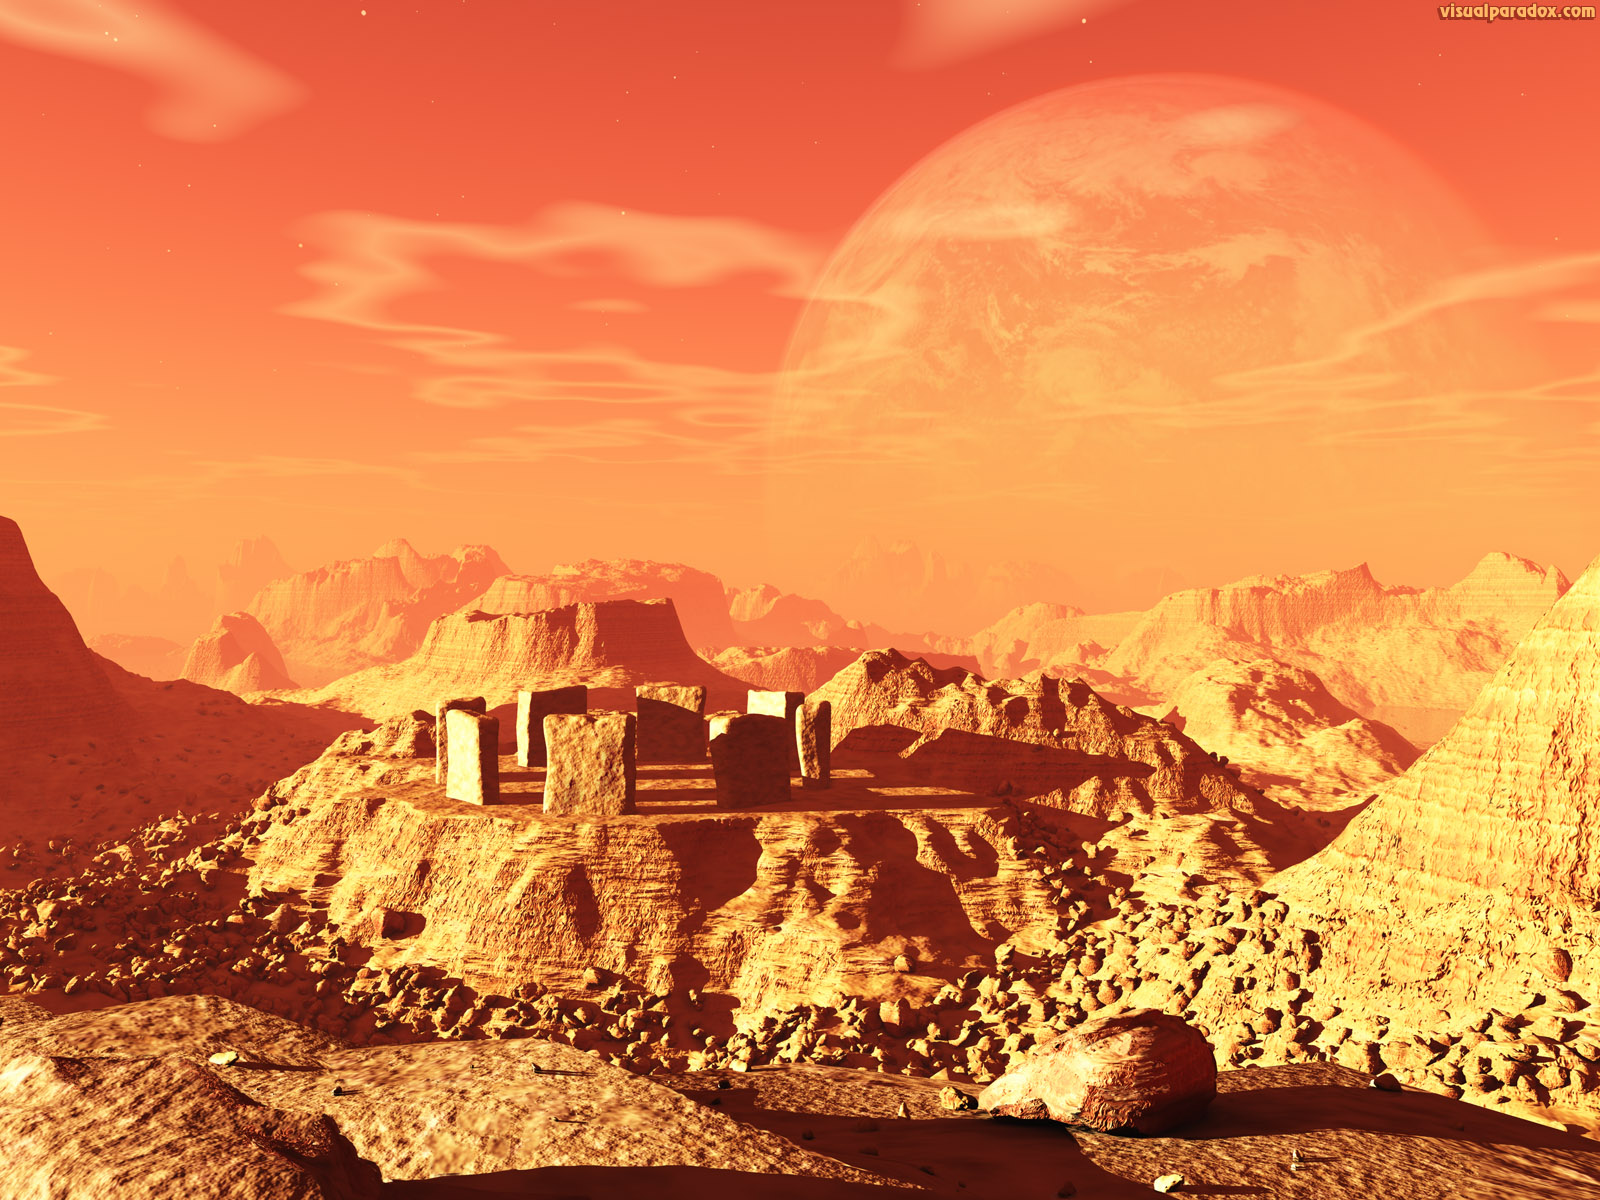 planet, space, stone, henge, monolith, alien, sky, mars, mercury, science fiction, 3d, wallpaper